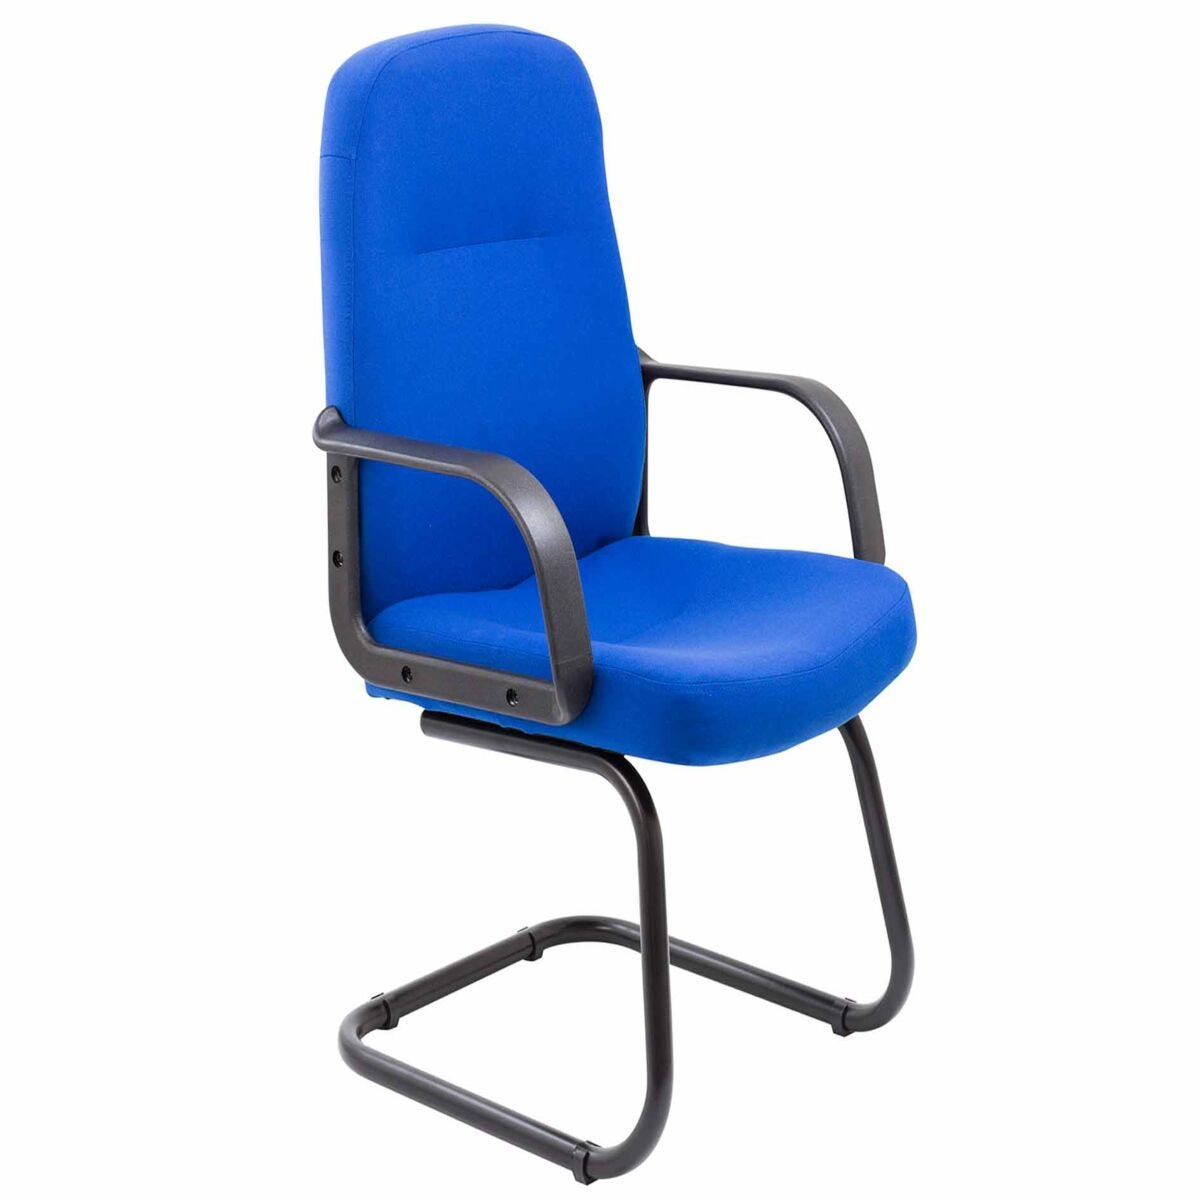 TC Office Canasta 2 Fabric Visitor Executive Chair